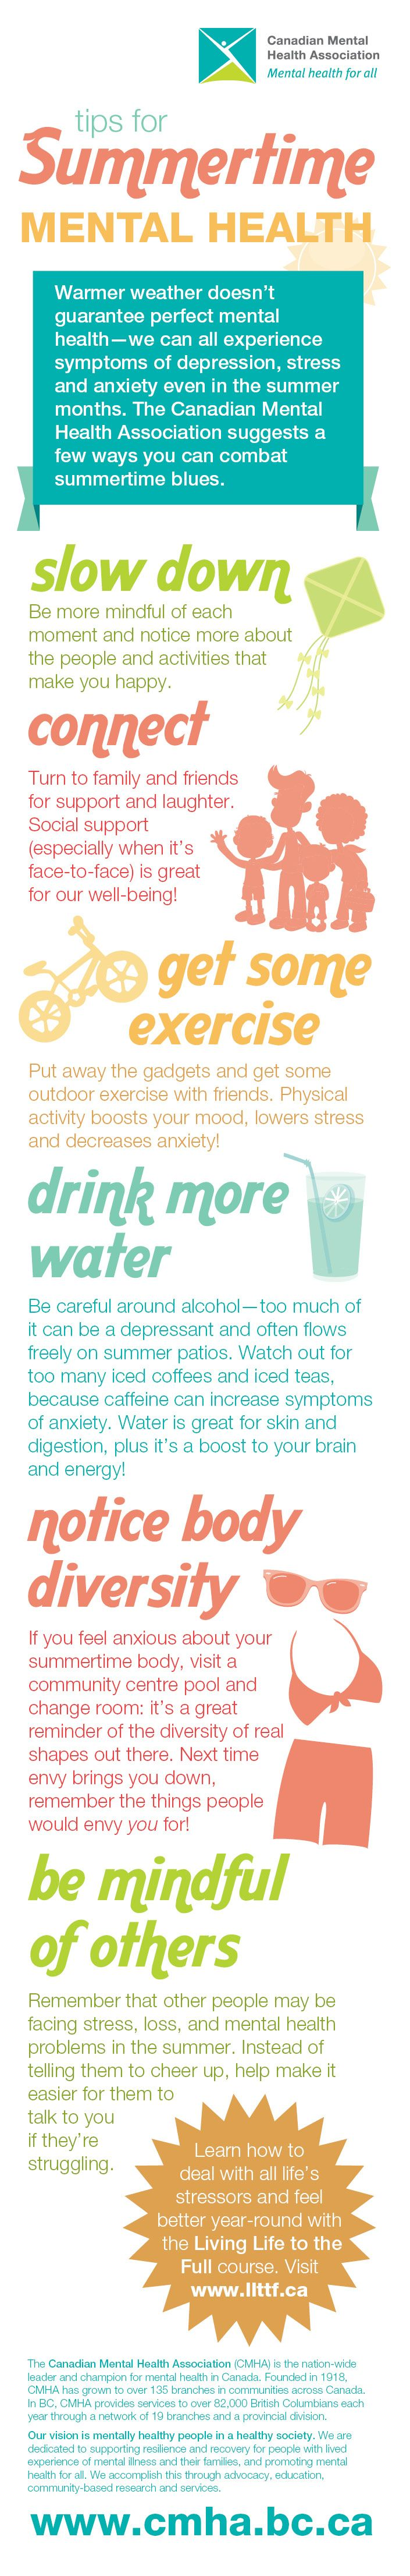 Warmer weather doesn't guarantee perfect mental health—we can all experience symptoms of depression, stress and anxiety even in the summer months. Which is why, all this week, we're featuring a series of tips to help you combat the summertime blues!